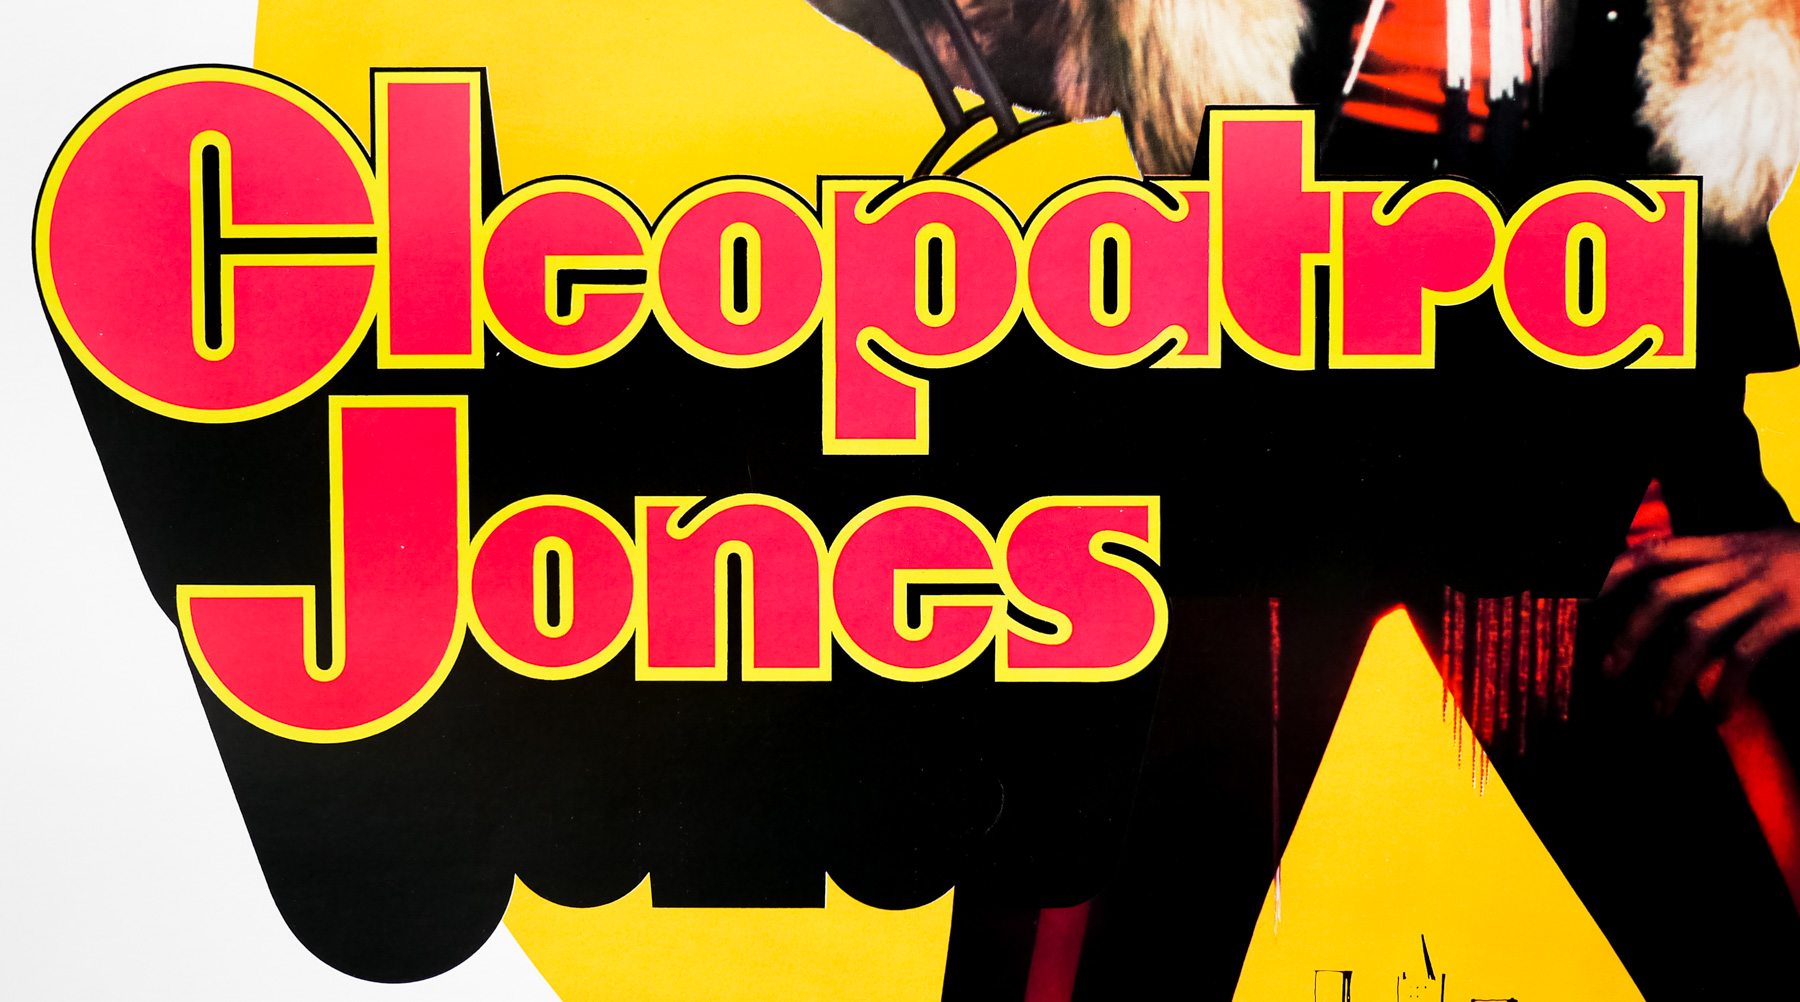 Cleopatra Jones 30x40 Usa